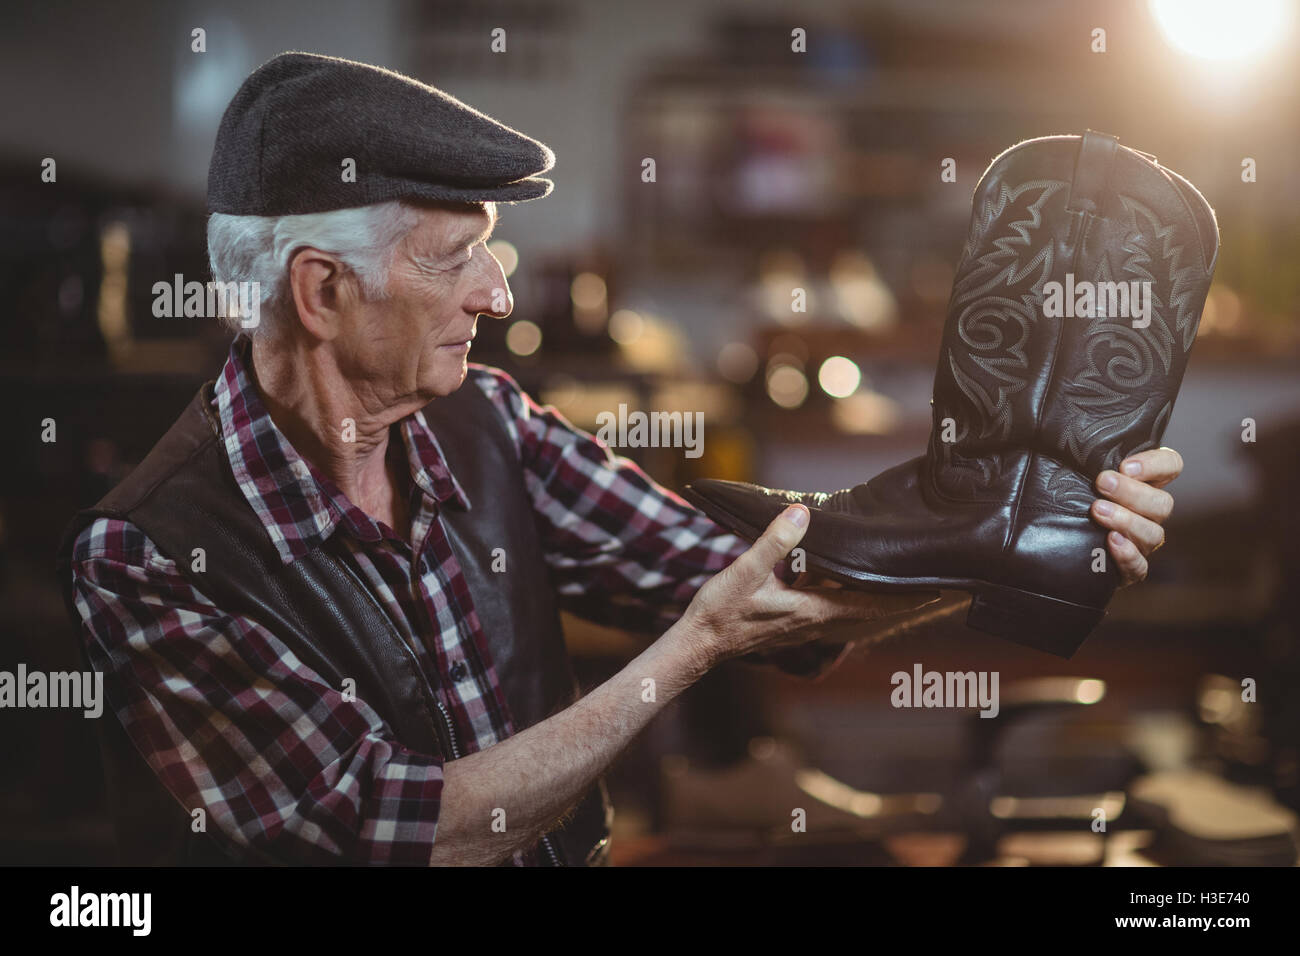 Shoemaker examining a shoe - Stock Image